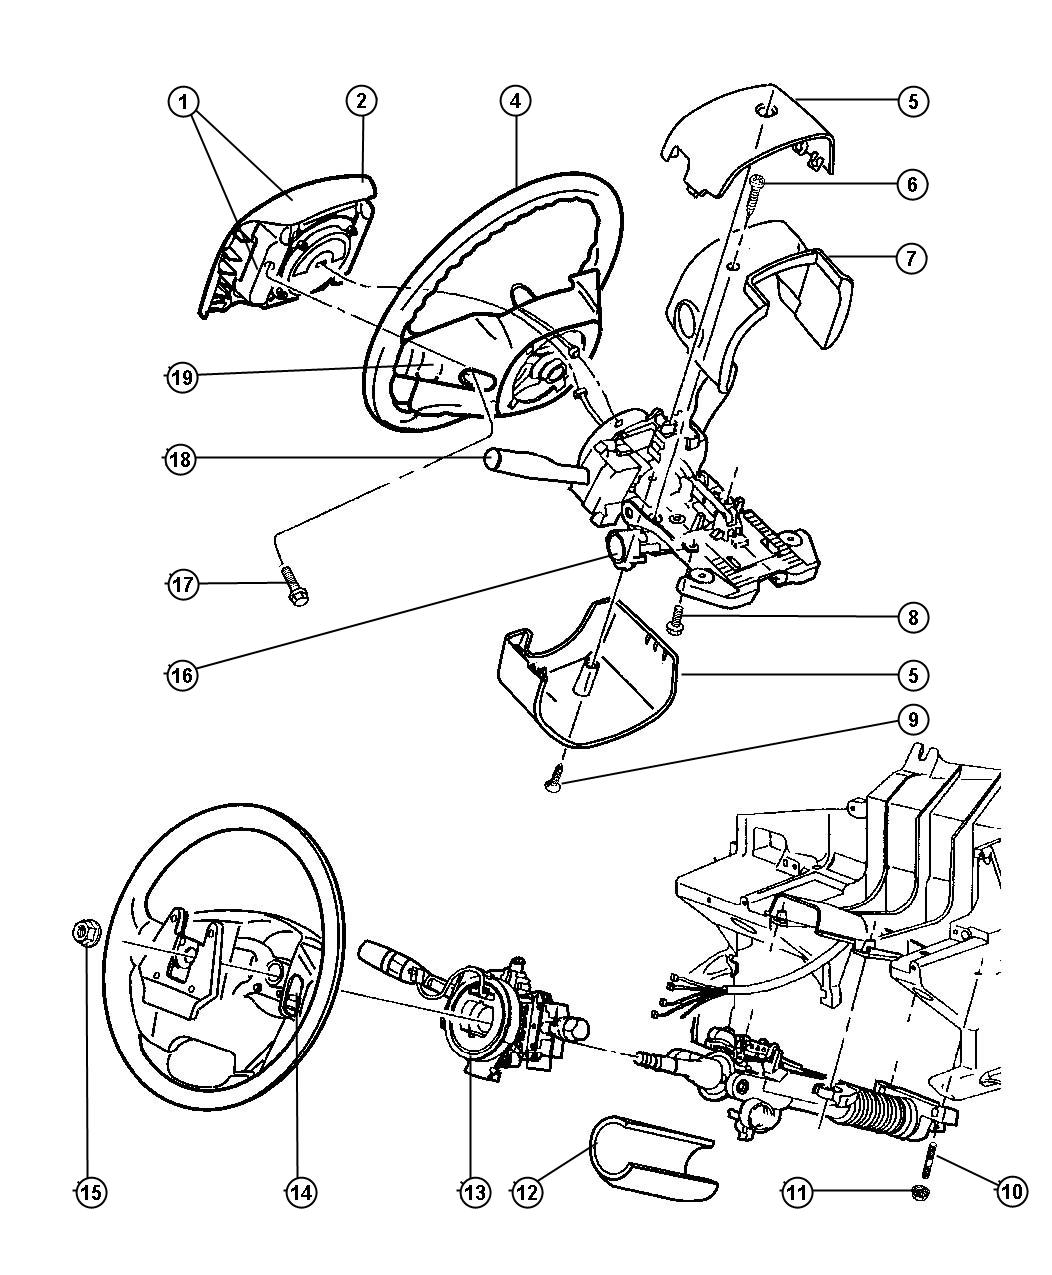 Engine Wiring Diagram For 1999 Jeep Grand Cherokee, Engine